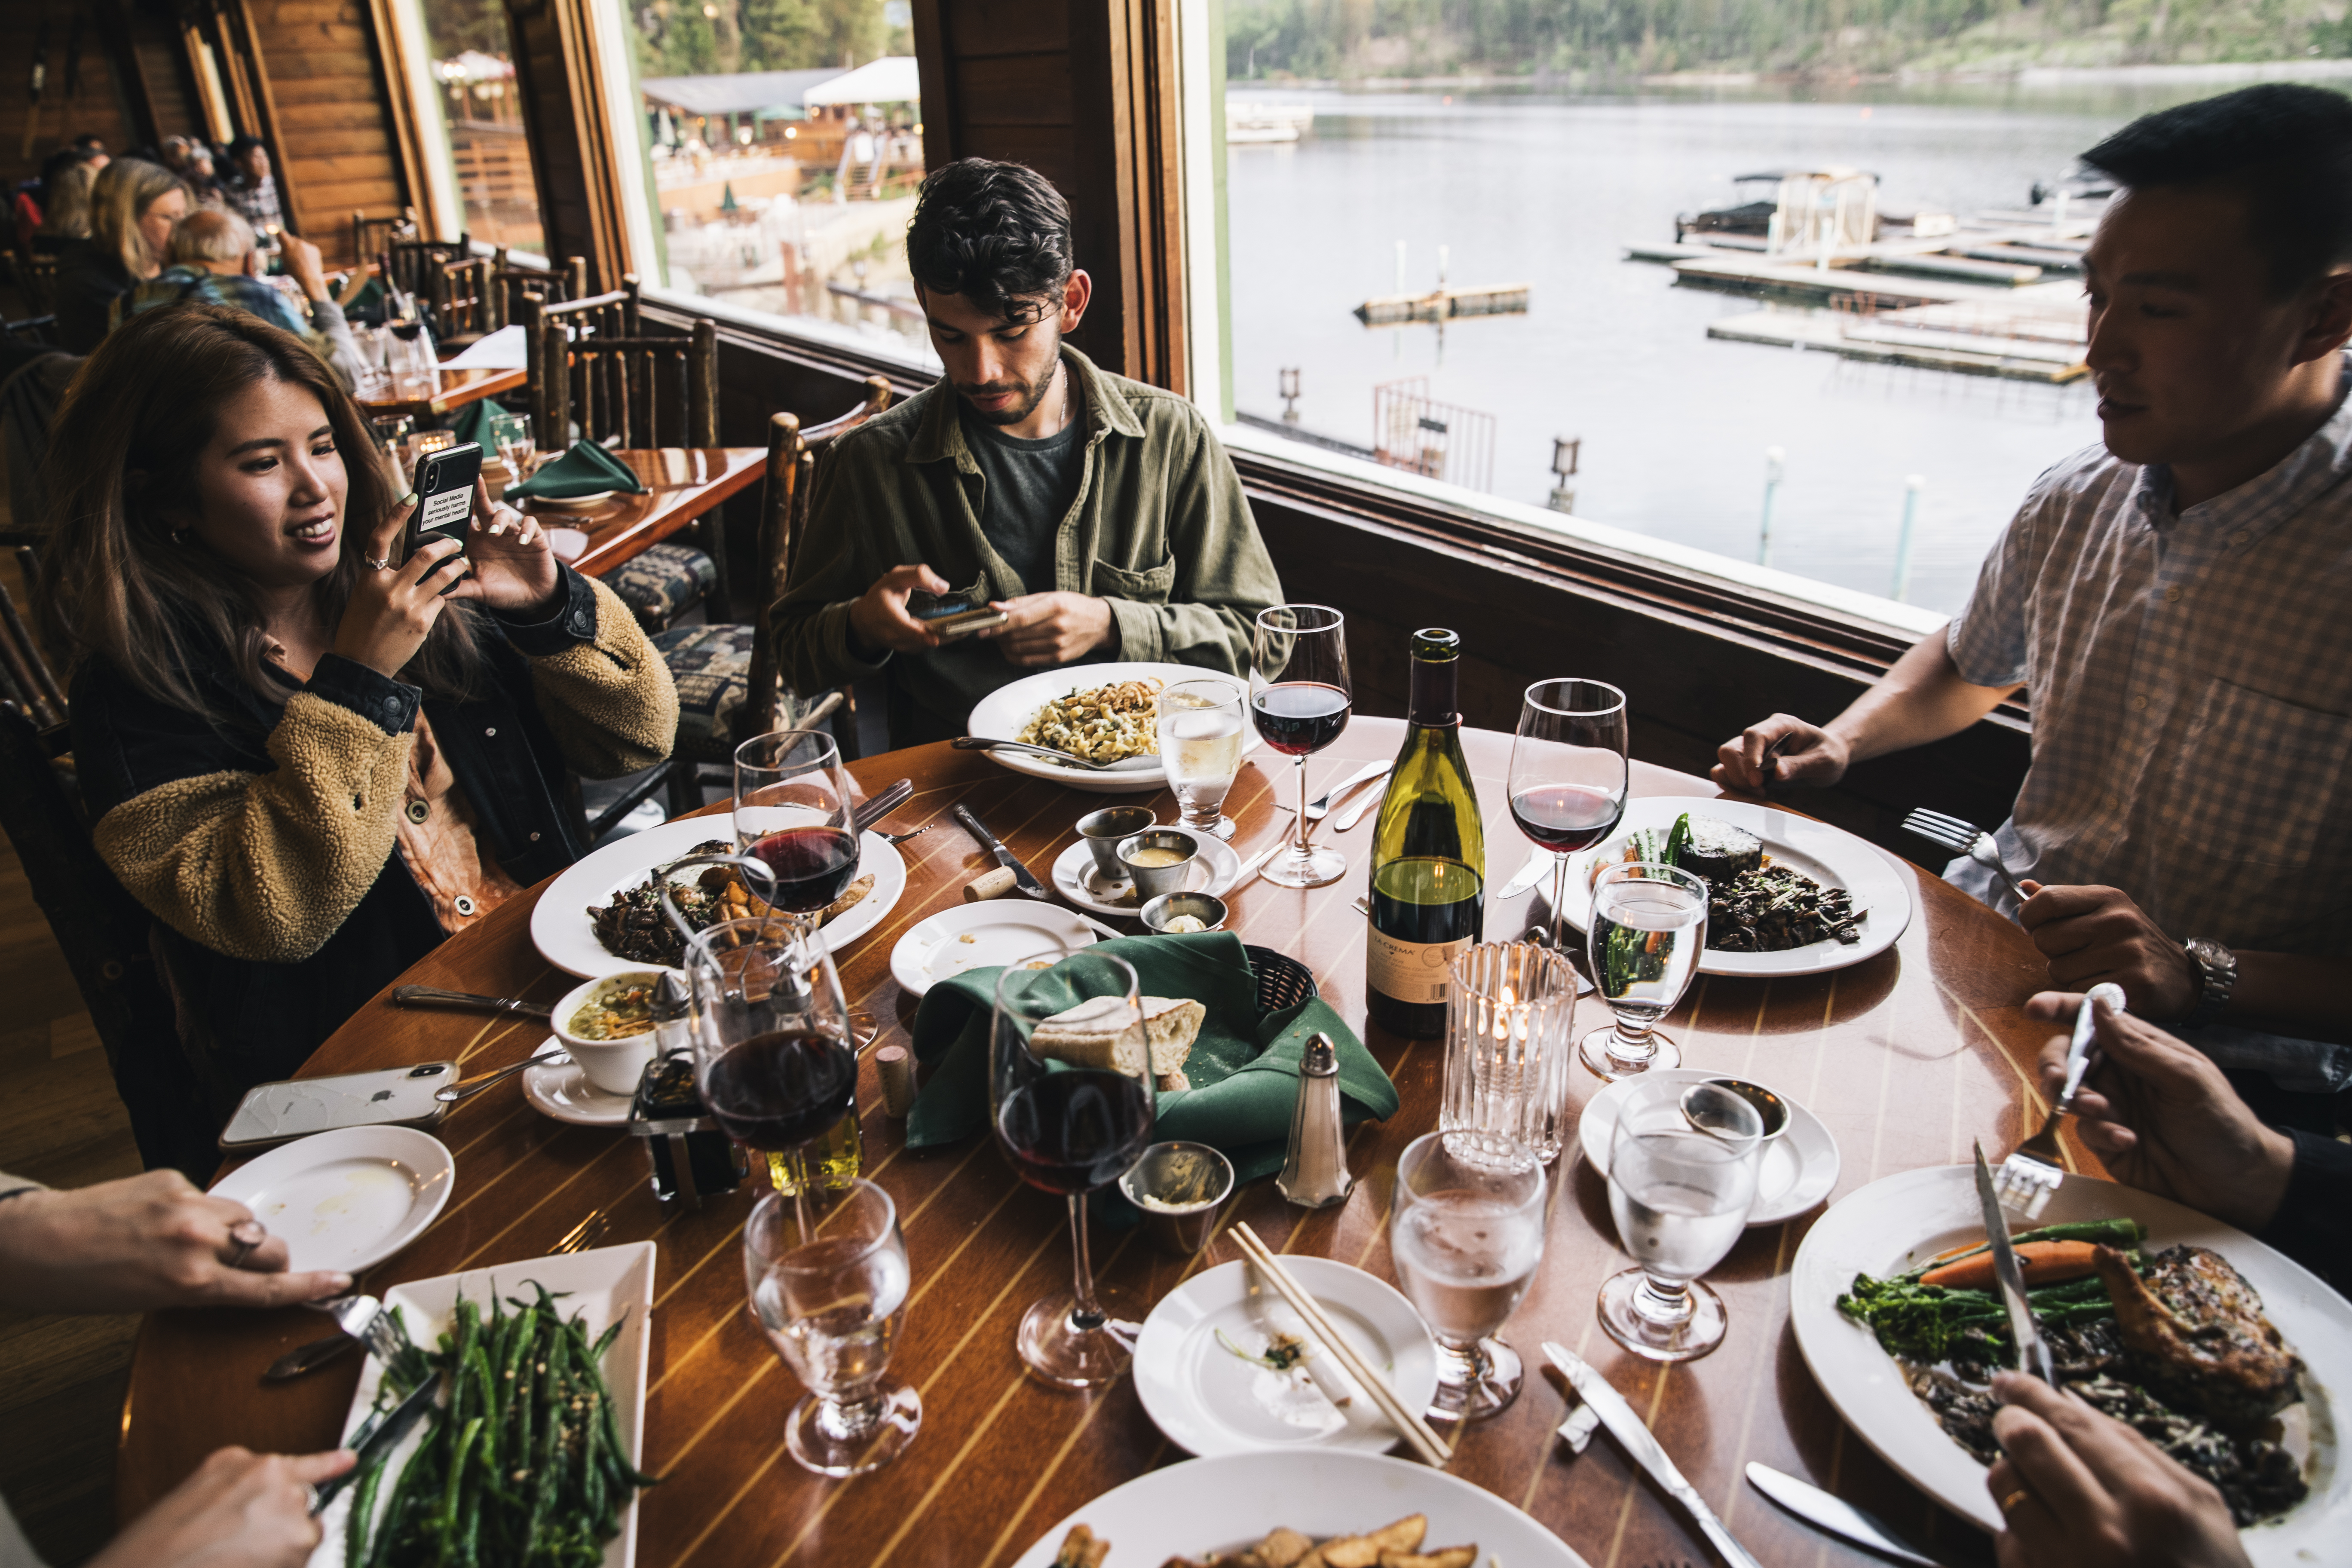 Dinner specials and views from Duceys on the Lake